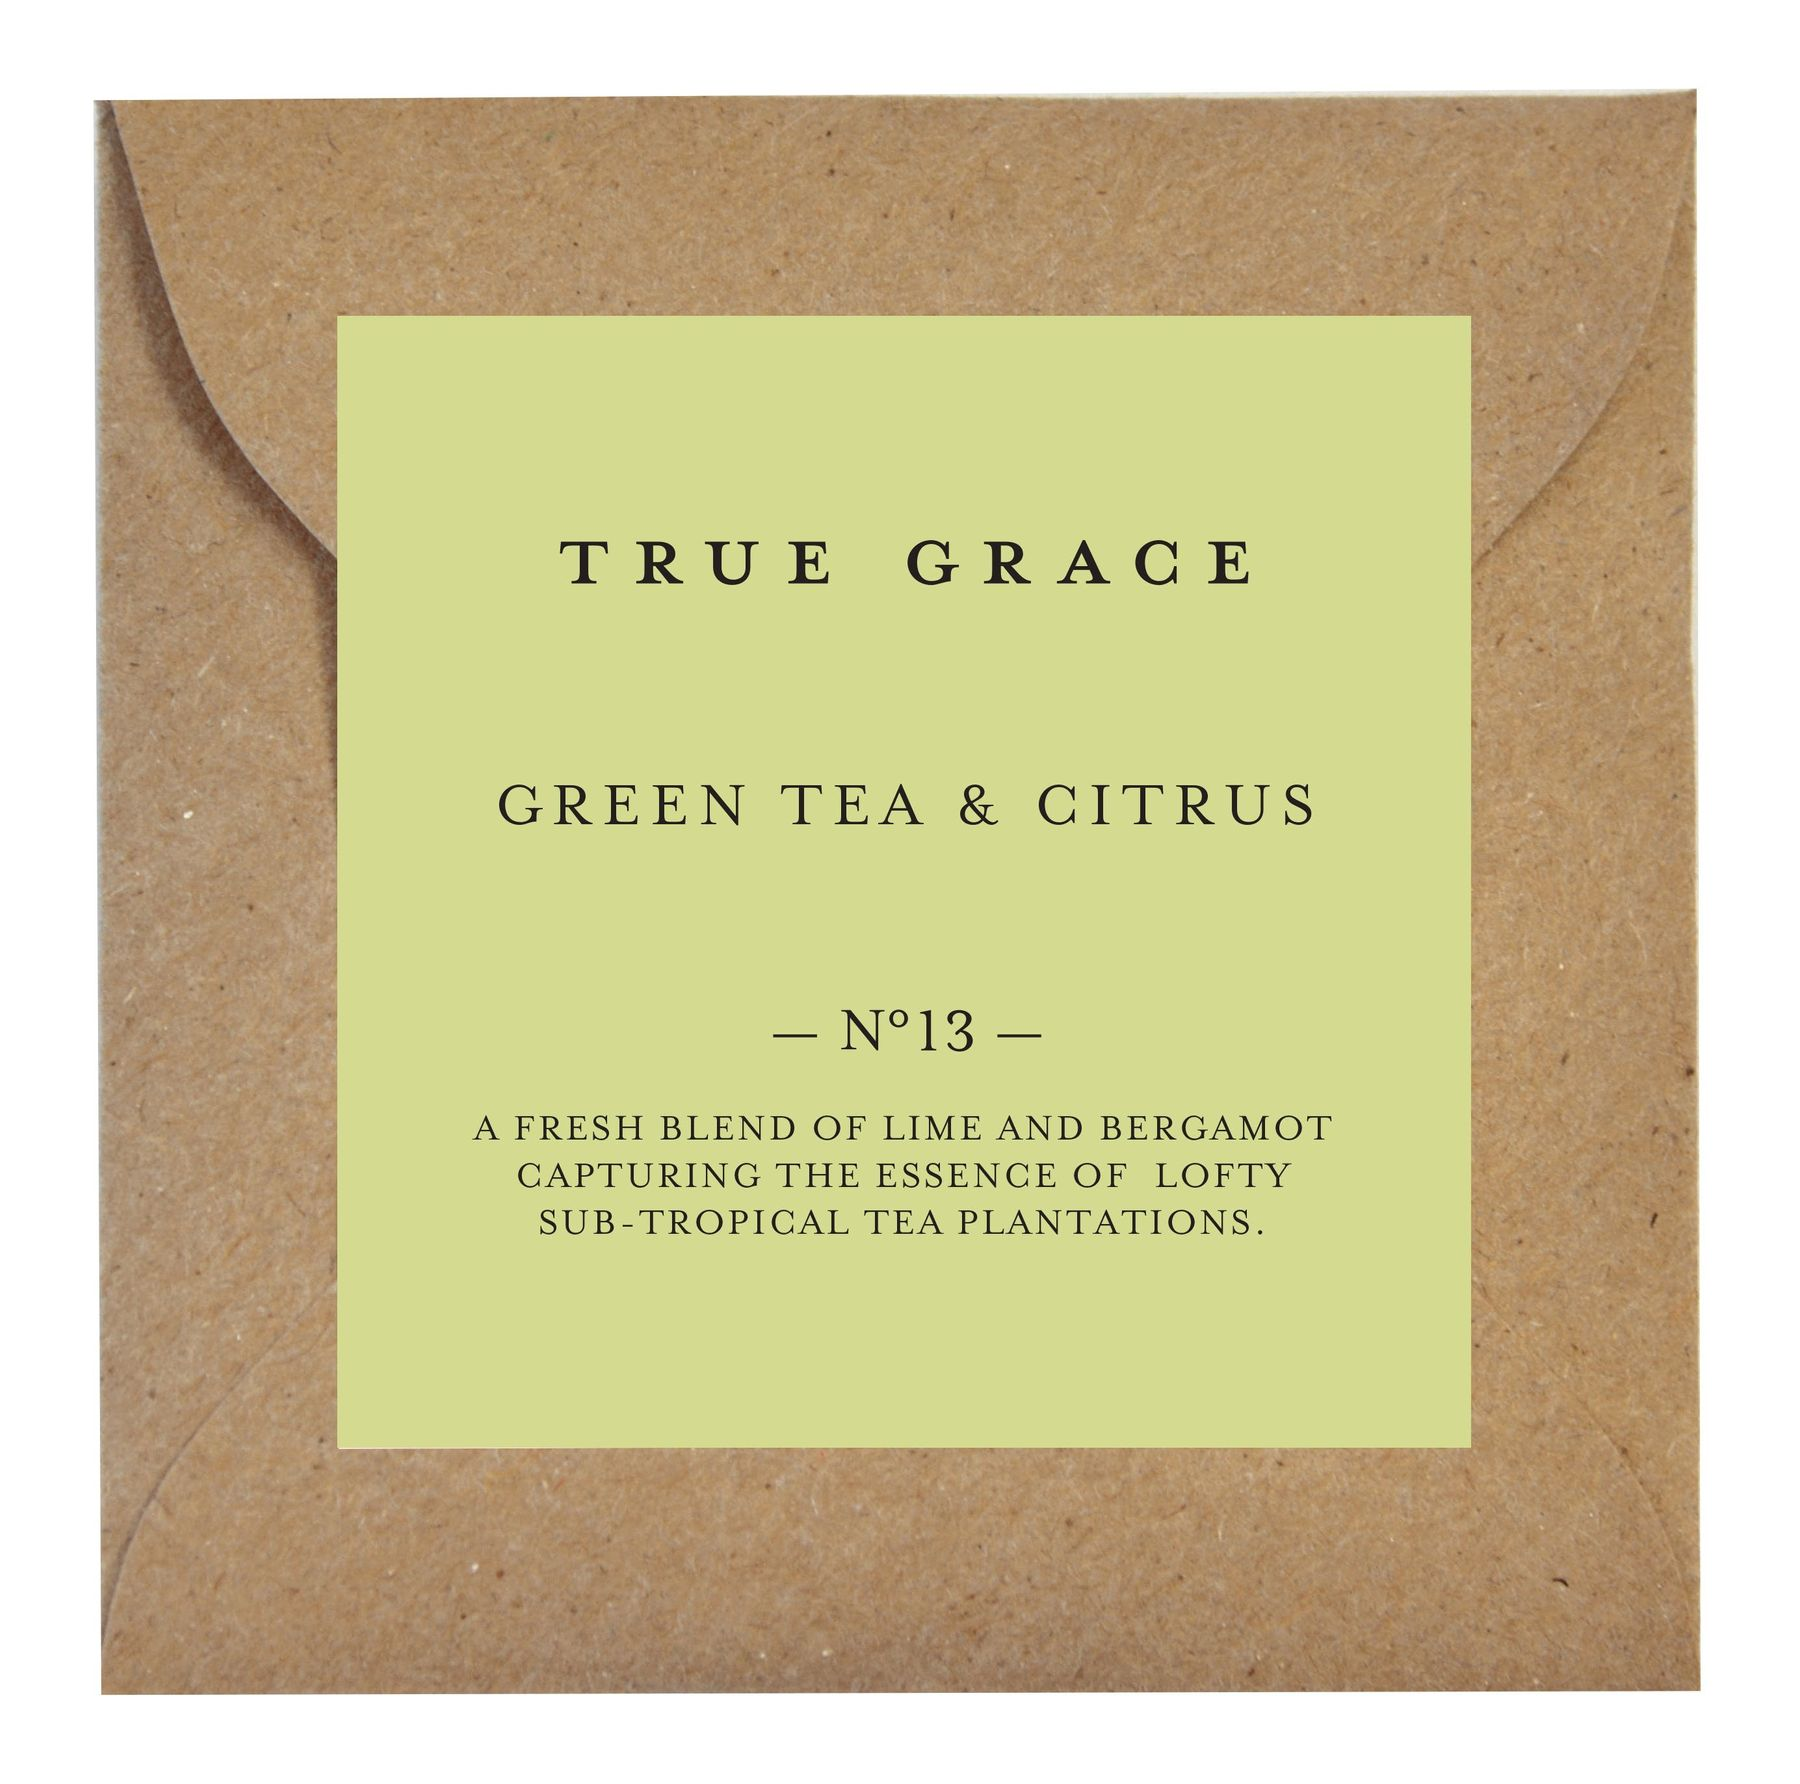 Ароматическое саше True Grace SCENTED LEAF № 13 Green Tea & Citrus VILLAGE арт: SLE-V-13